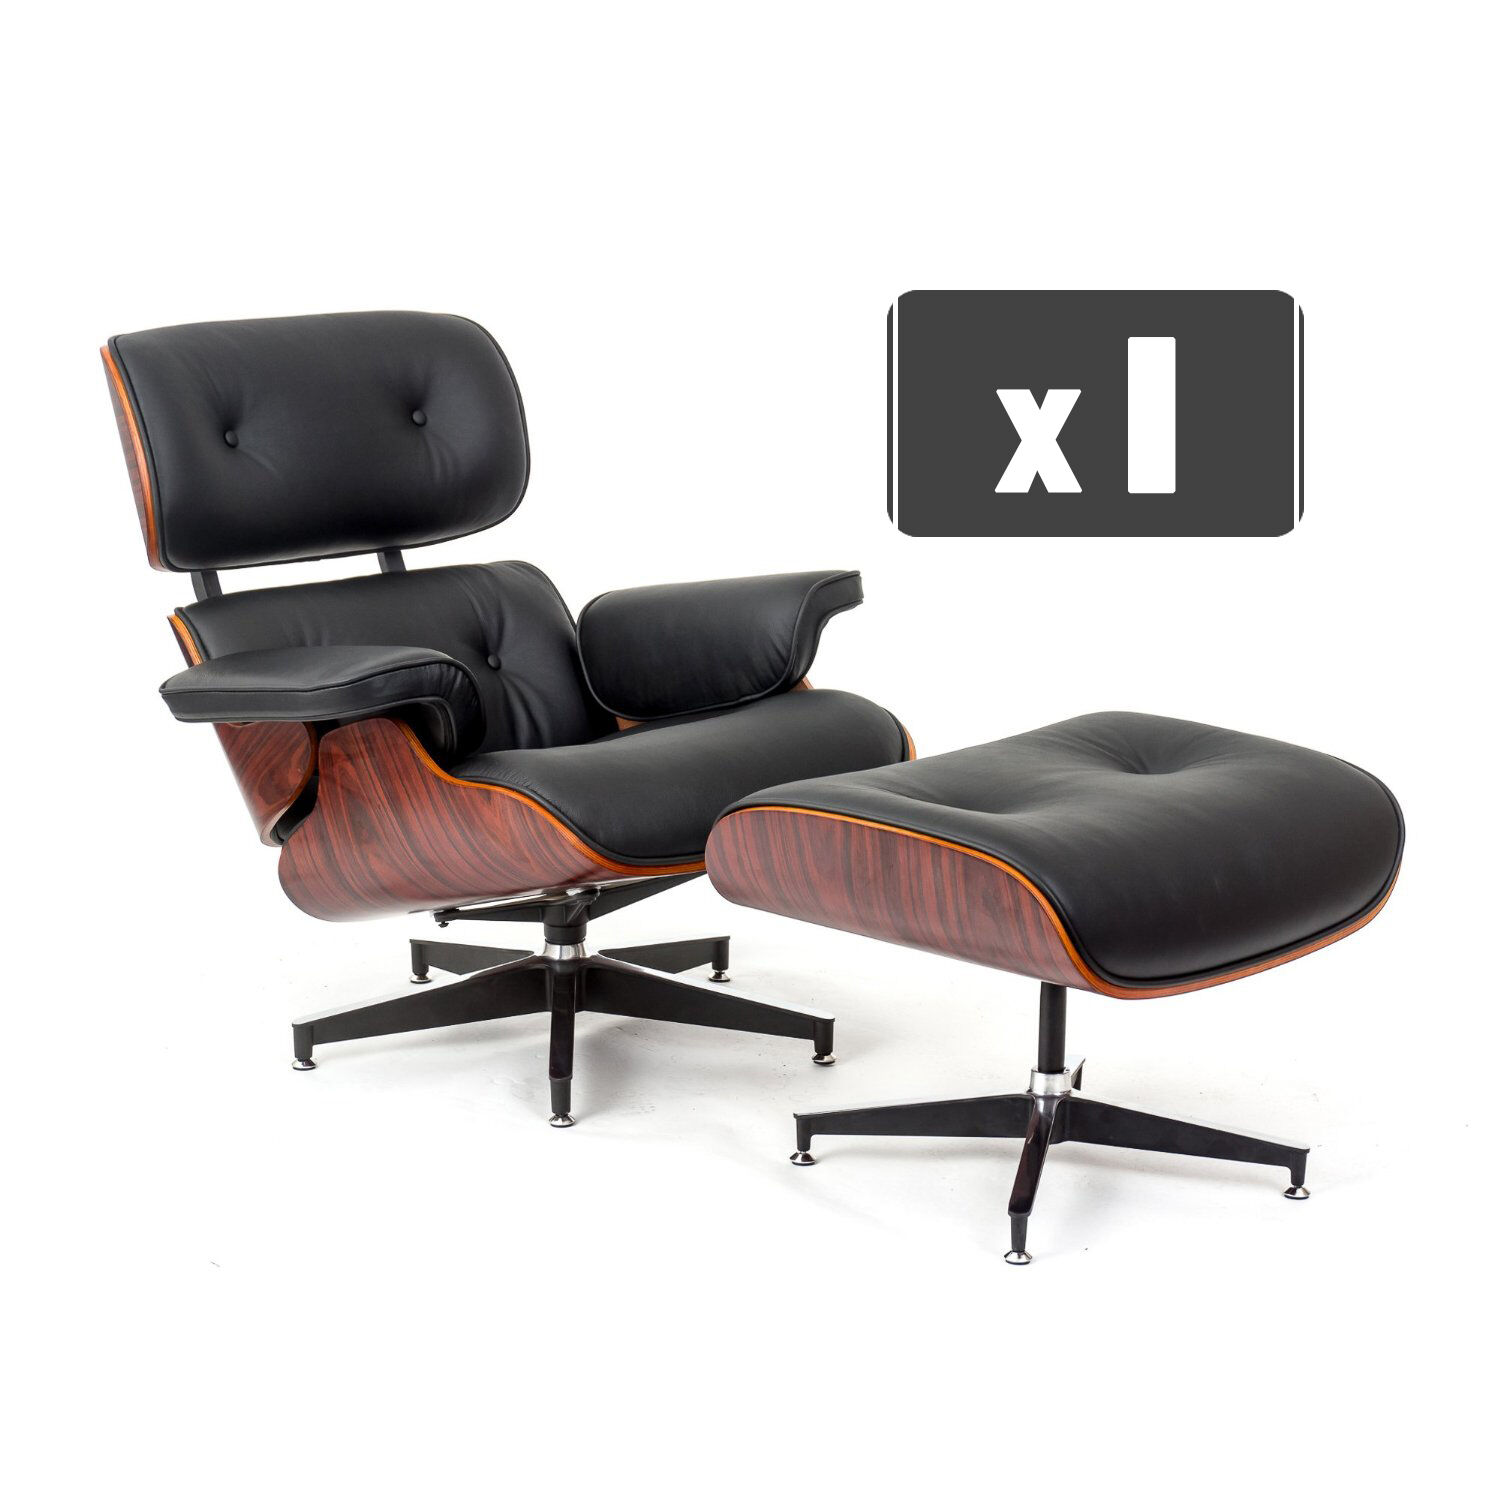 Replica charles eames lounge chair ottoman in black for Imitation chaise eames